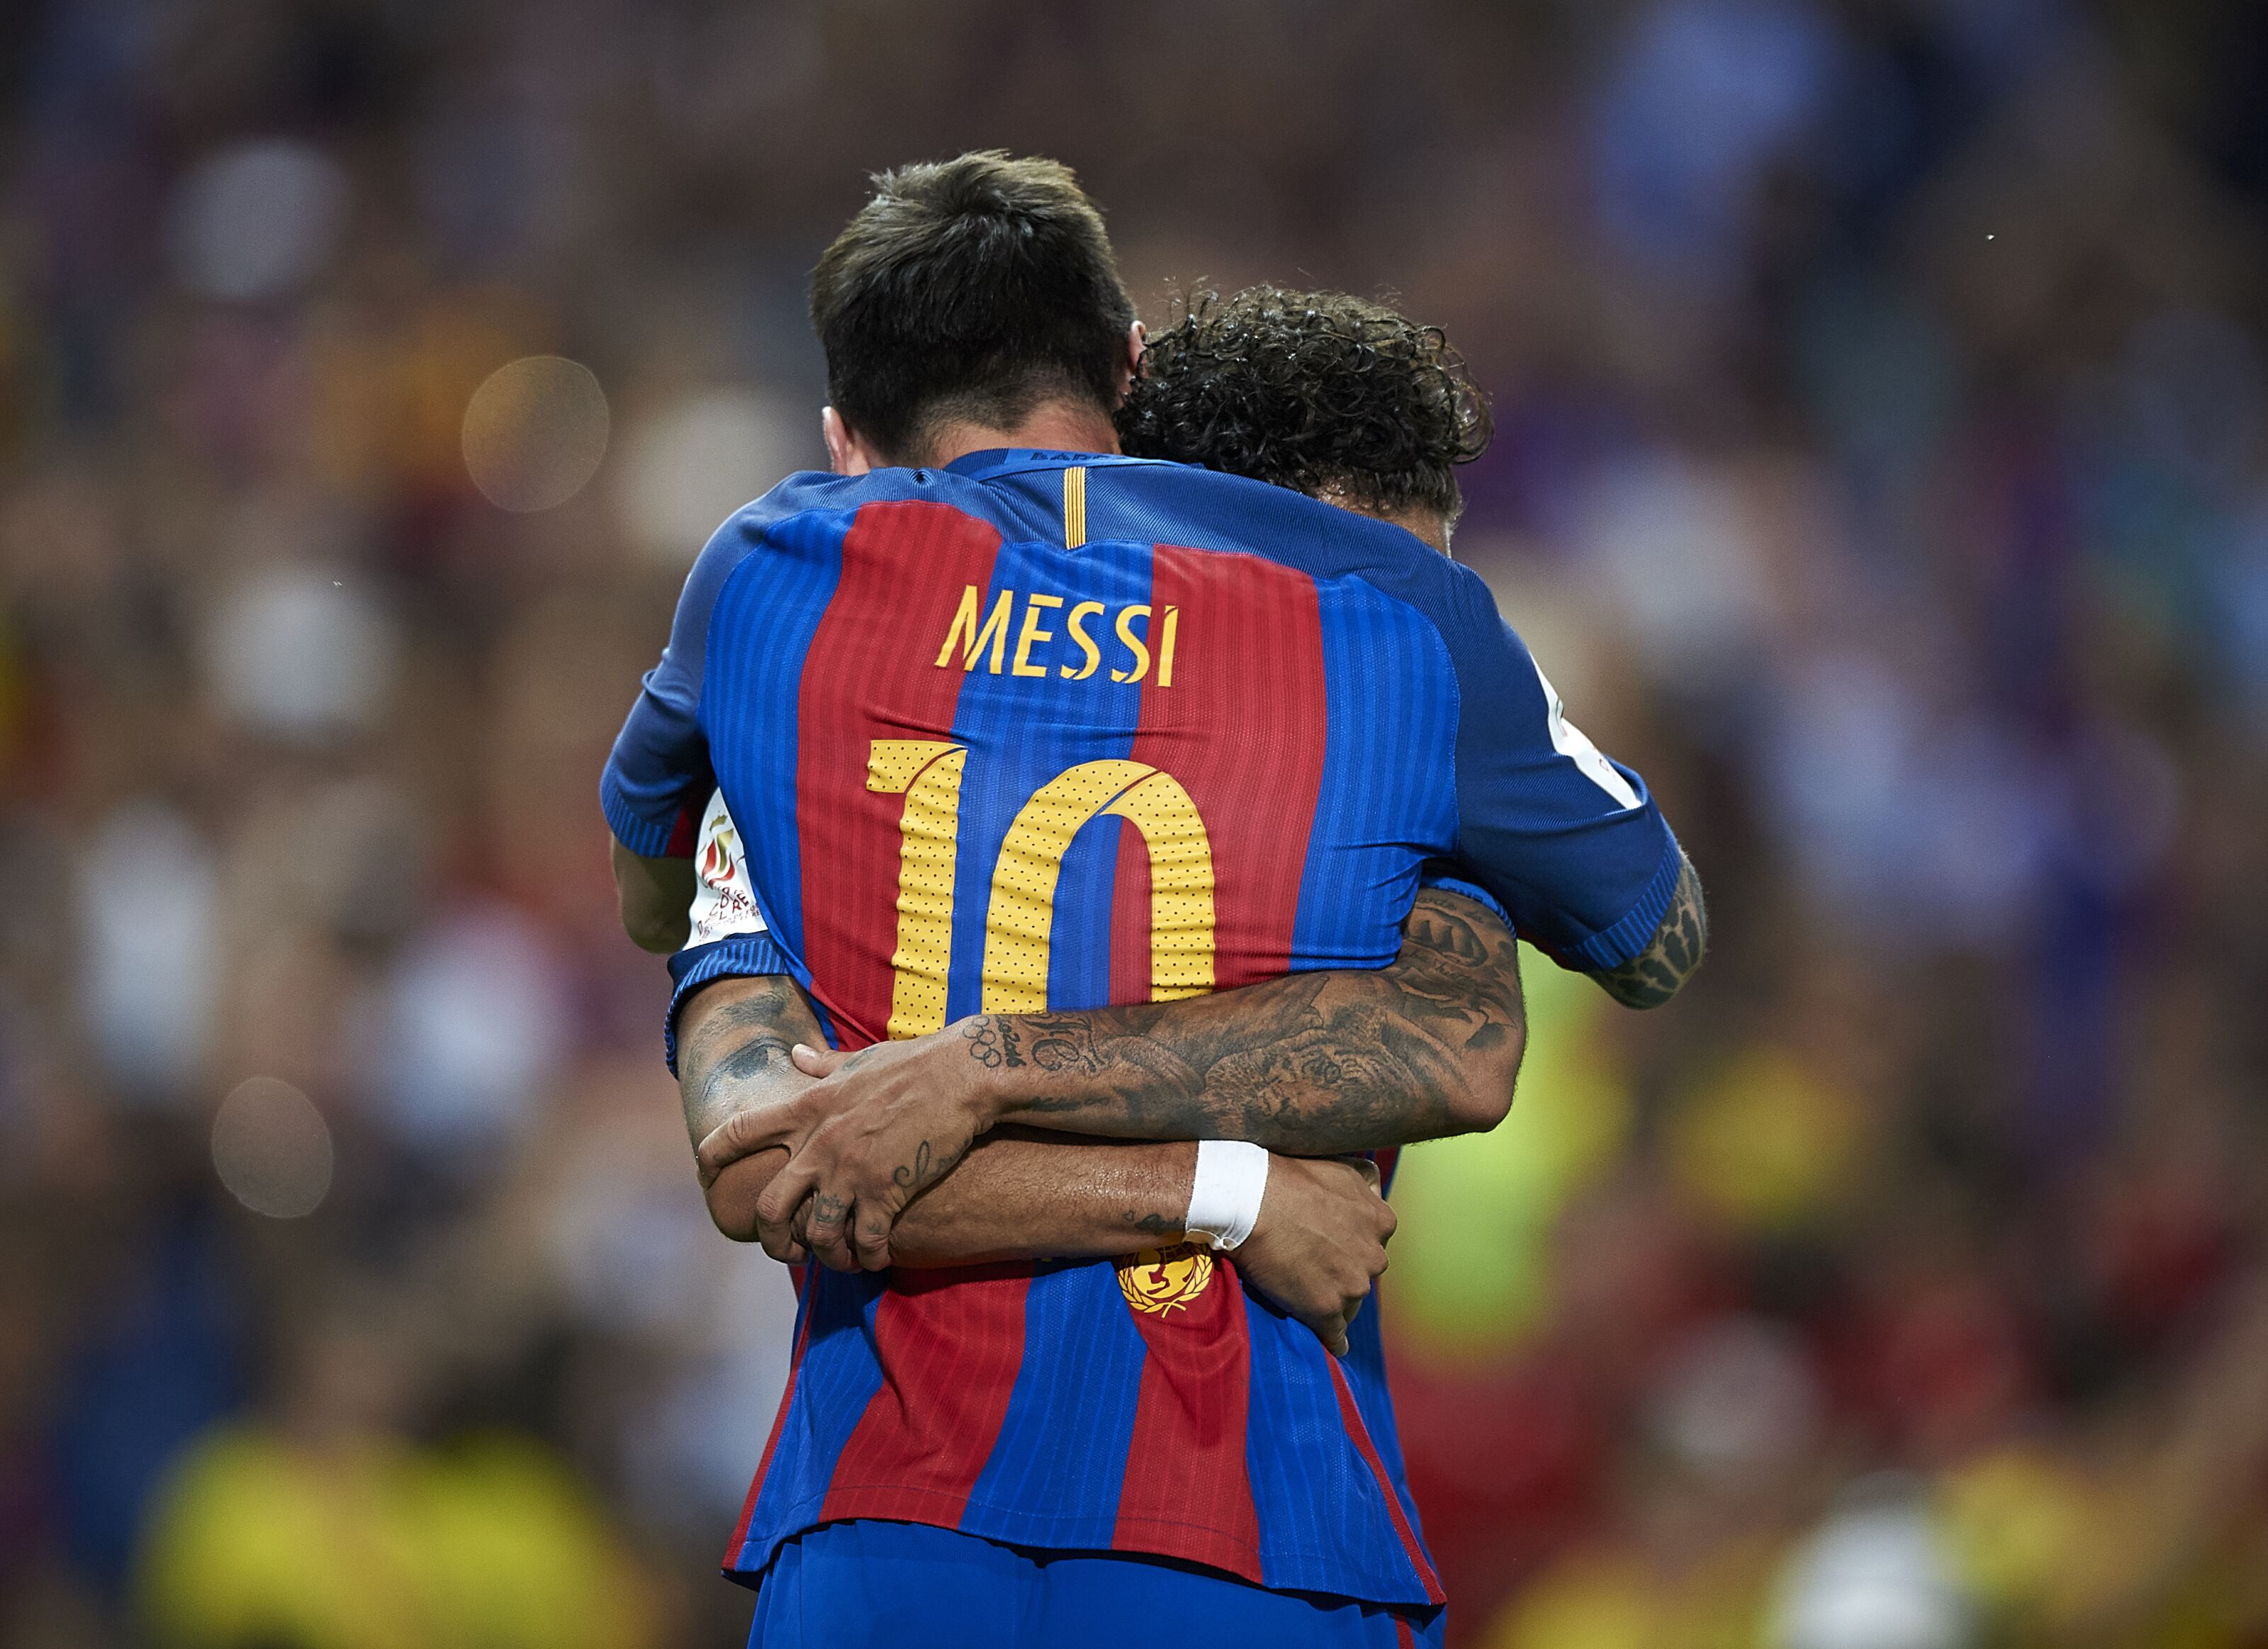 Barcelona: Lionel Messi convinced Neymar to turn down Real Madrid